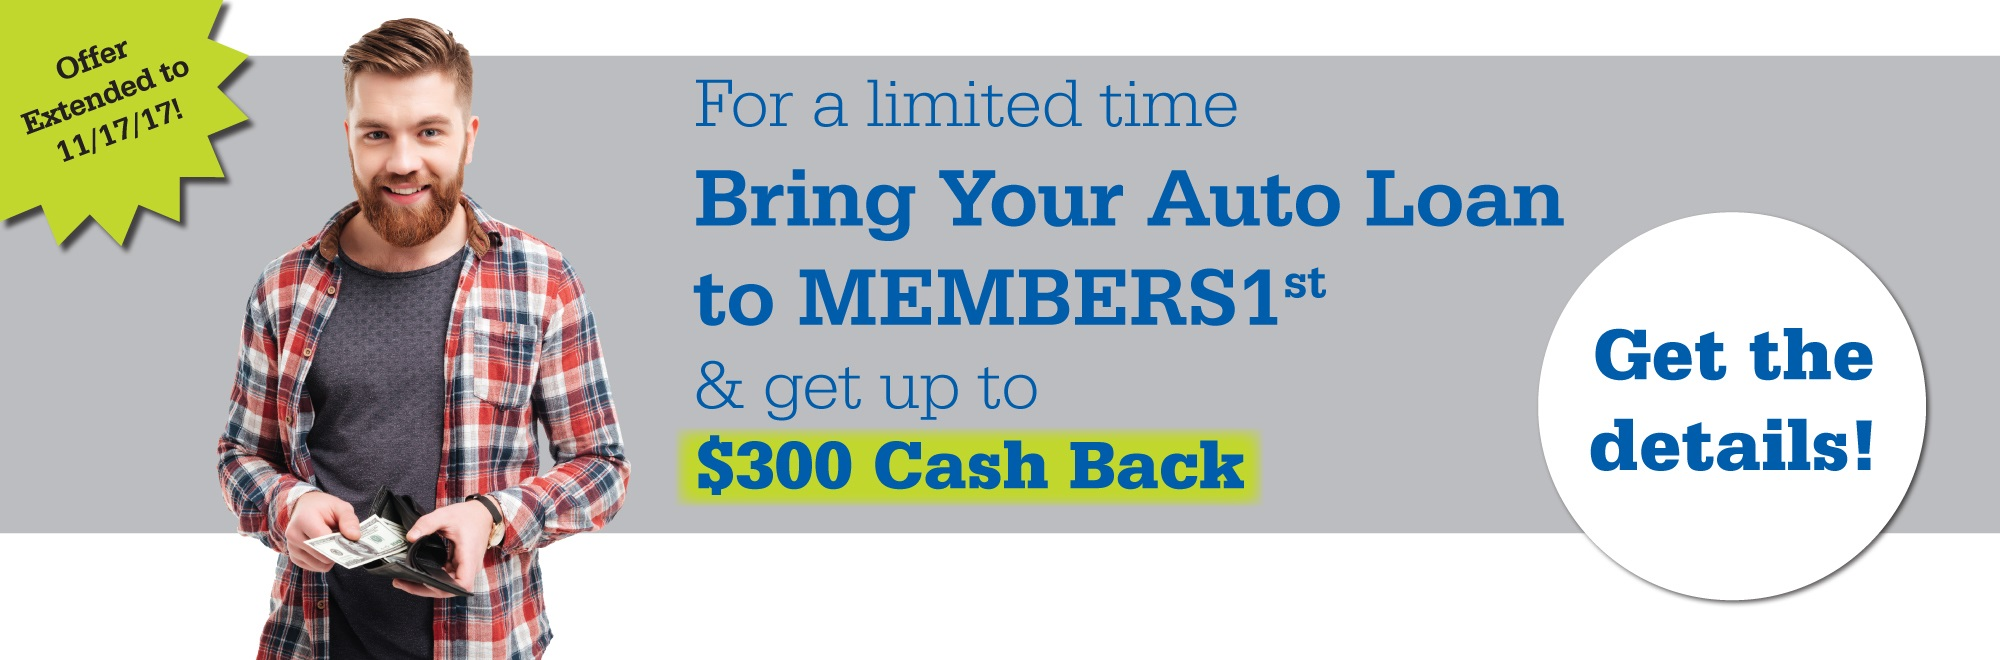 Refinance your auto loan with us!